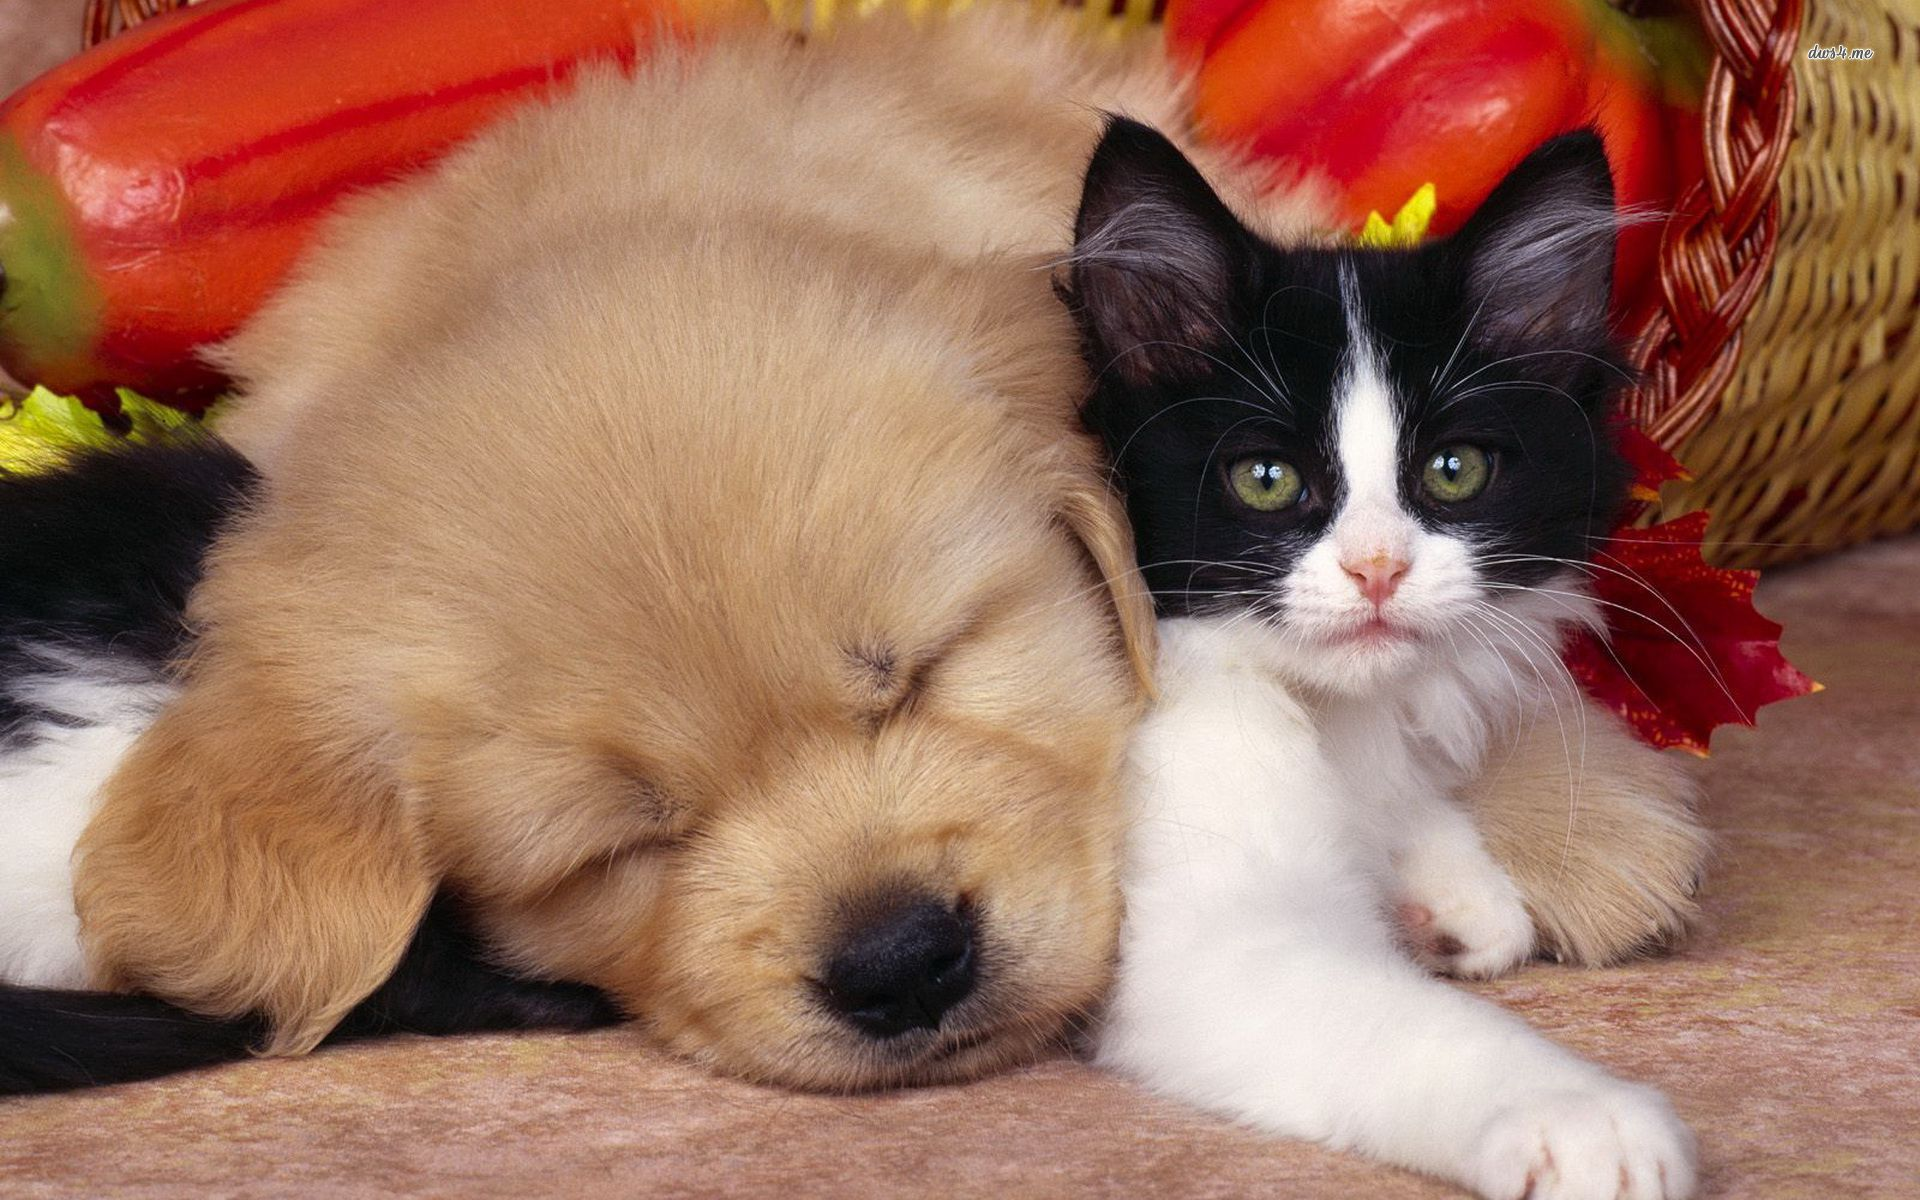 cute dog cat hd wallpaper has recently added in stylish hd wallpapers 1920x1200